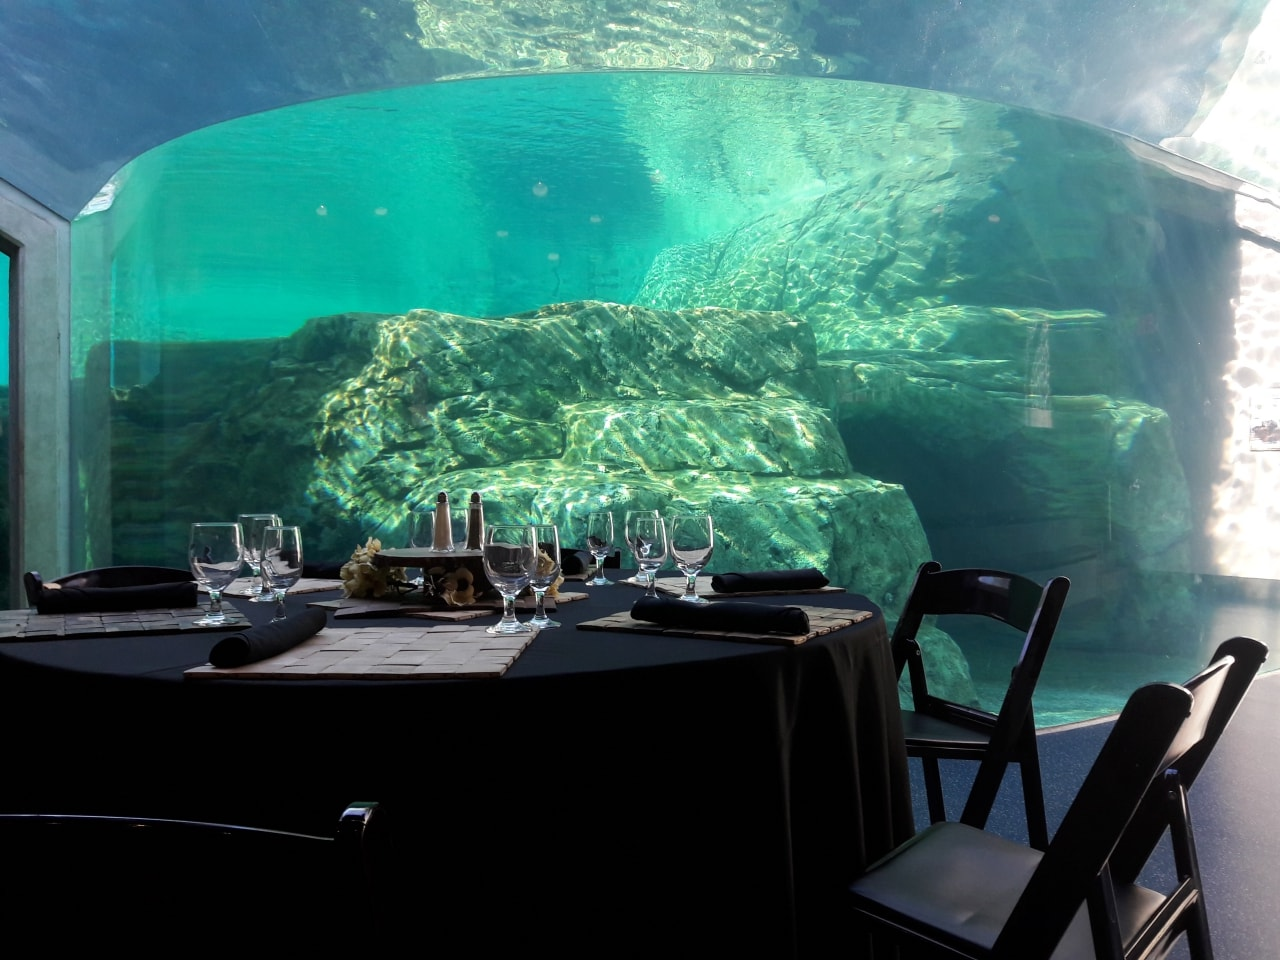 Corporate event venue with unique setting of sea animals in Columbia, SC